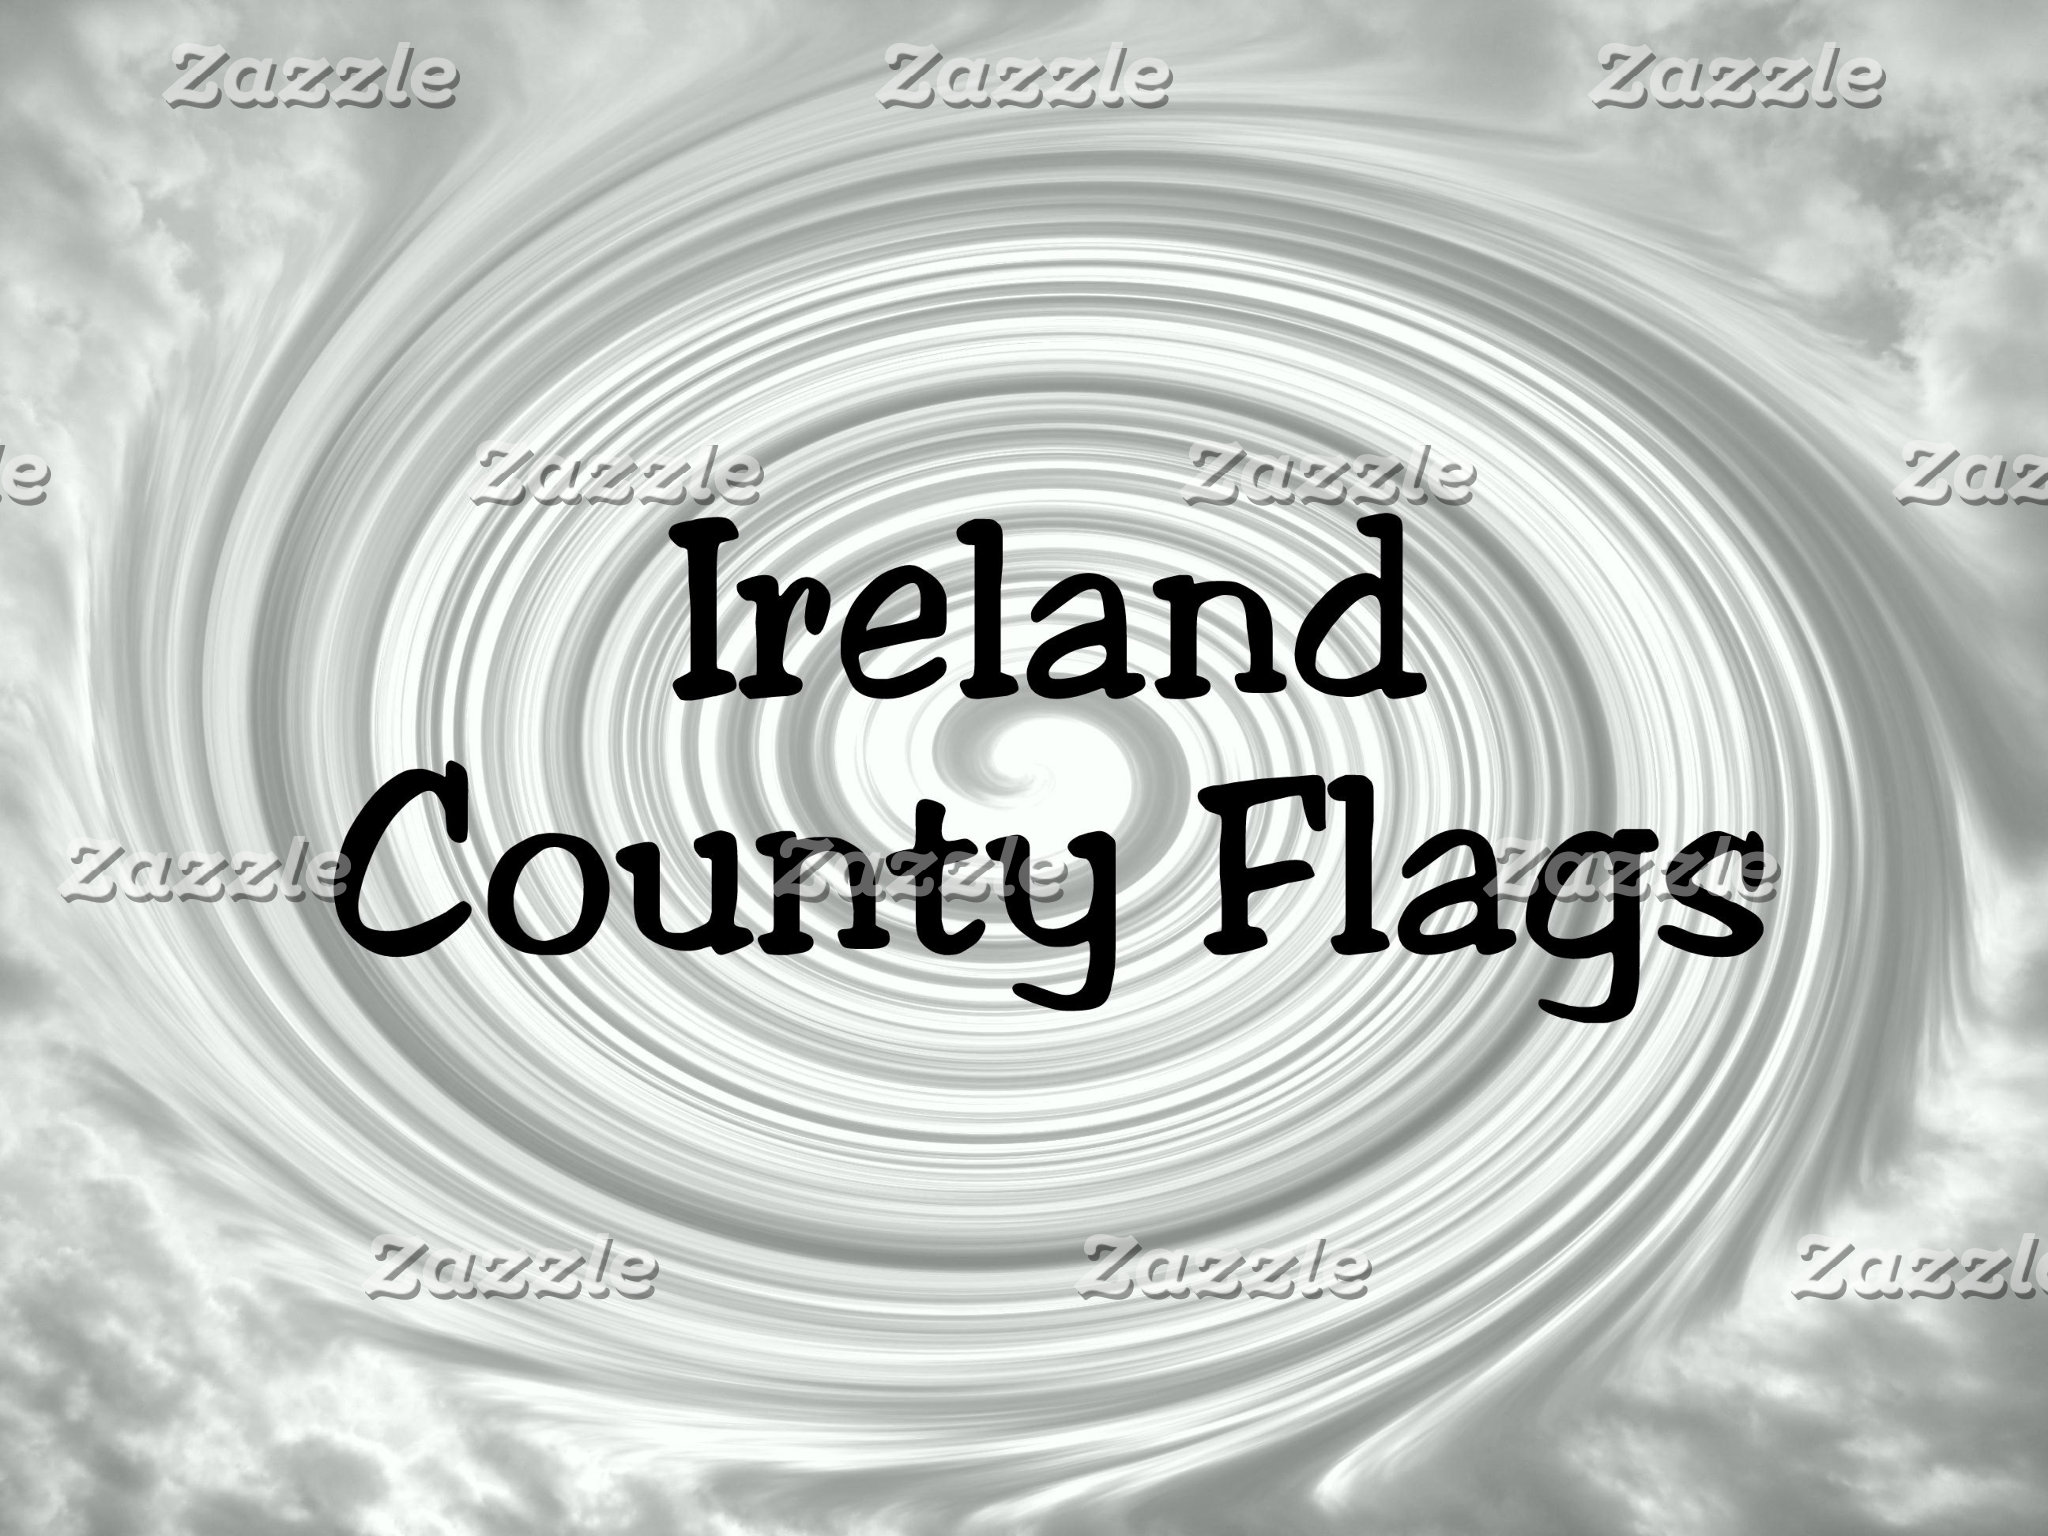 Ireland County Flags